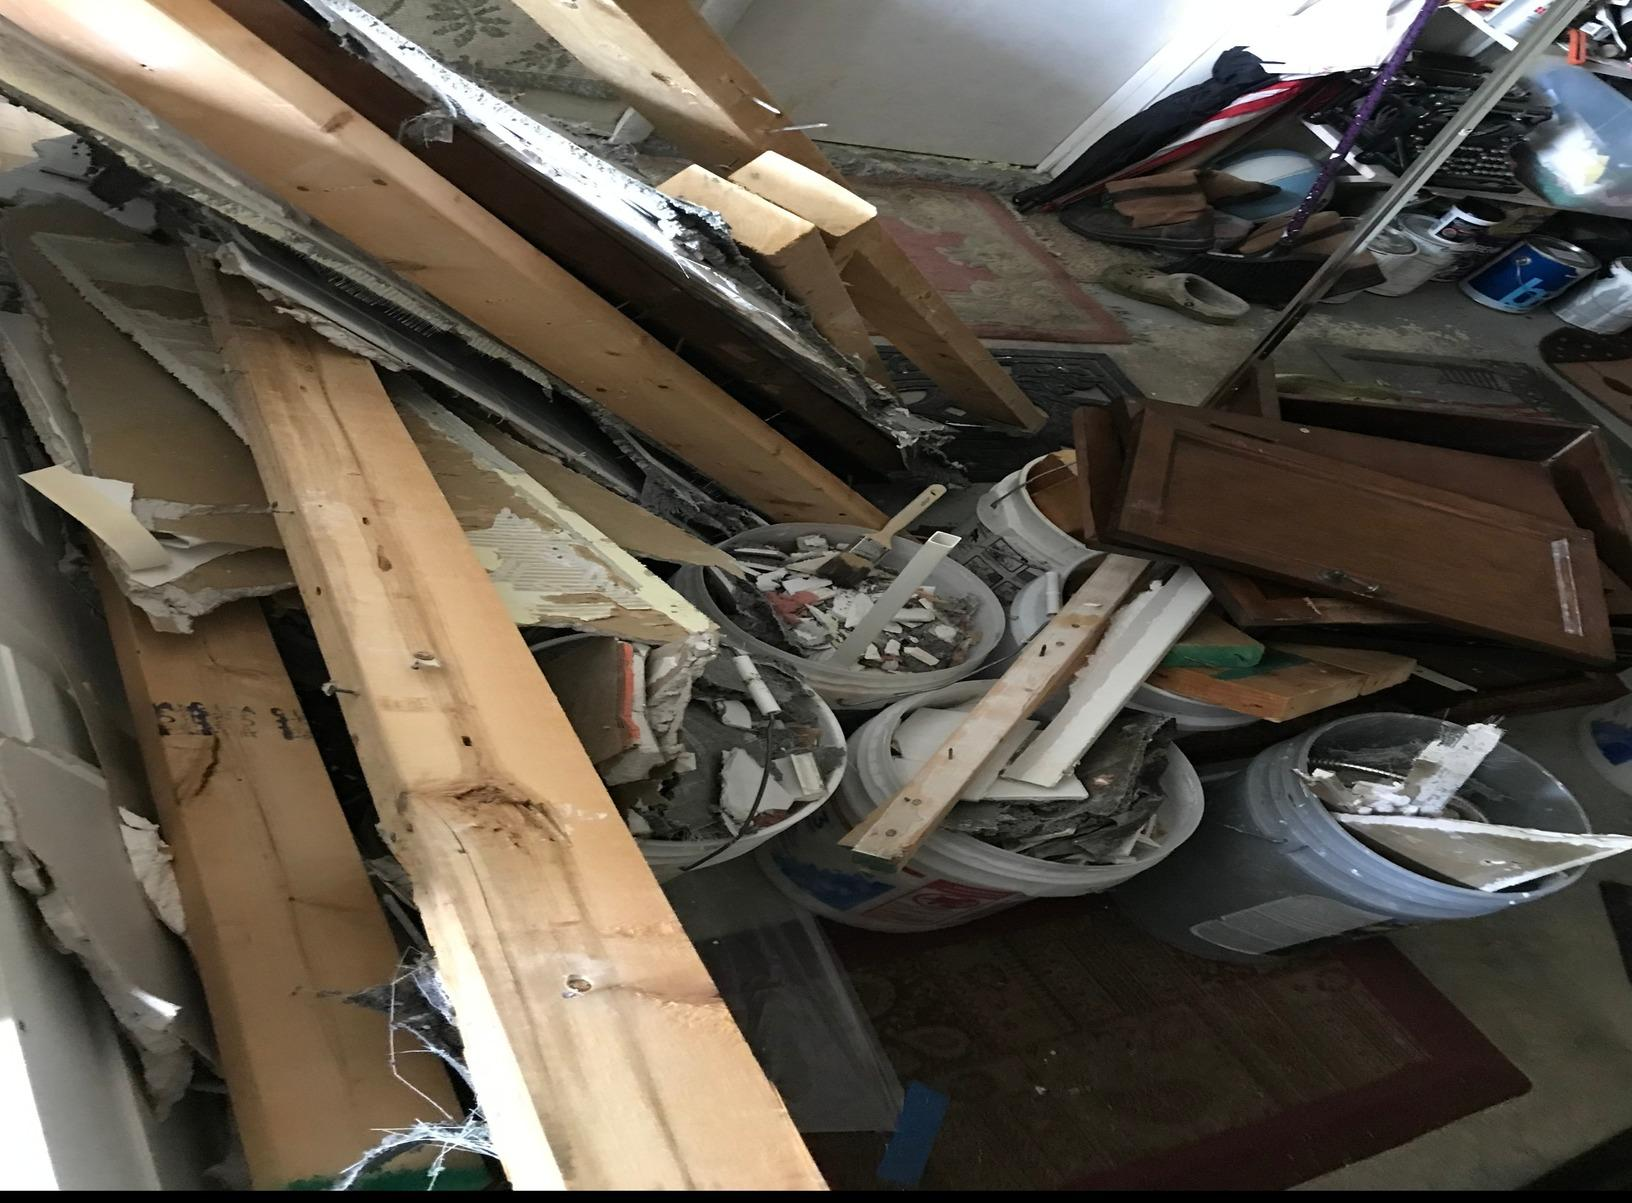 Construction & Demolition Debris Removal in Catonsville, MD - Before Photo